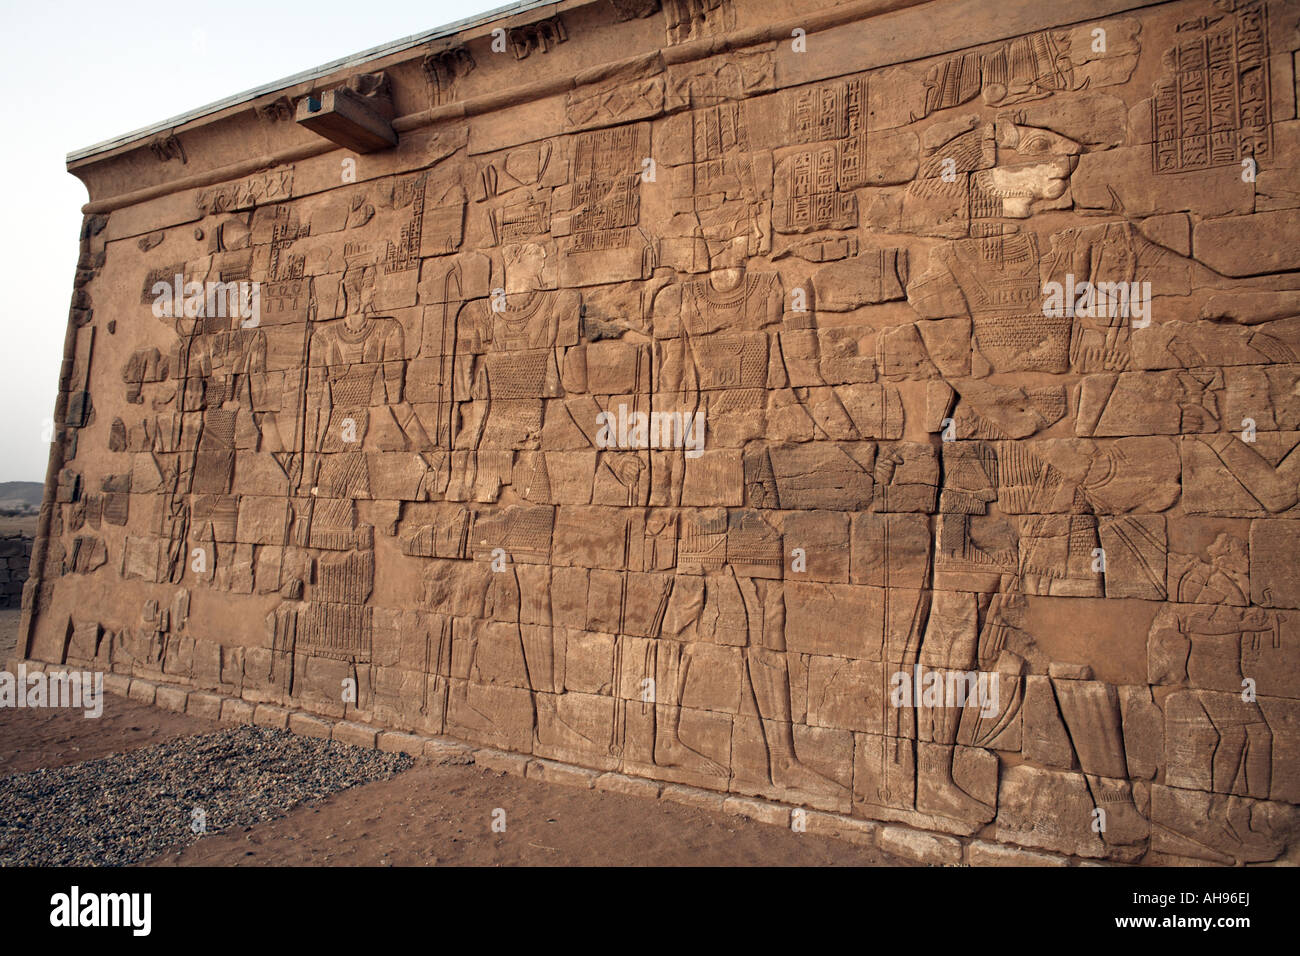 The Lion Temple at Musawwarat es Sufra, Sudan, Africa - Stock Image